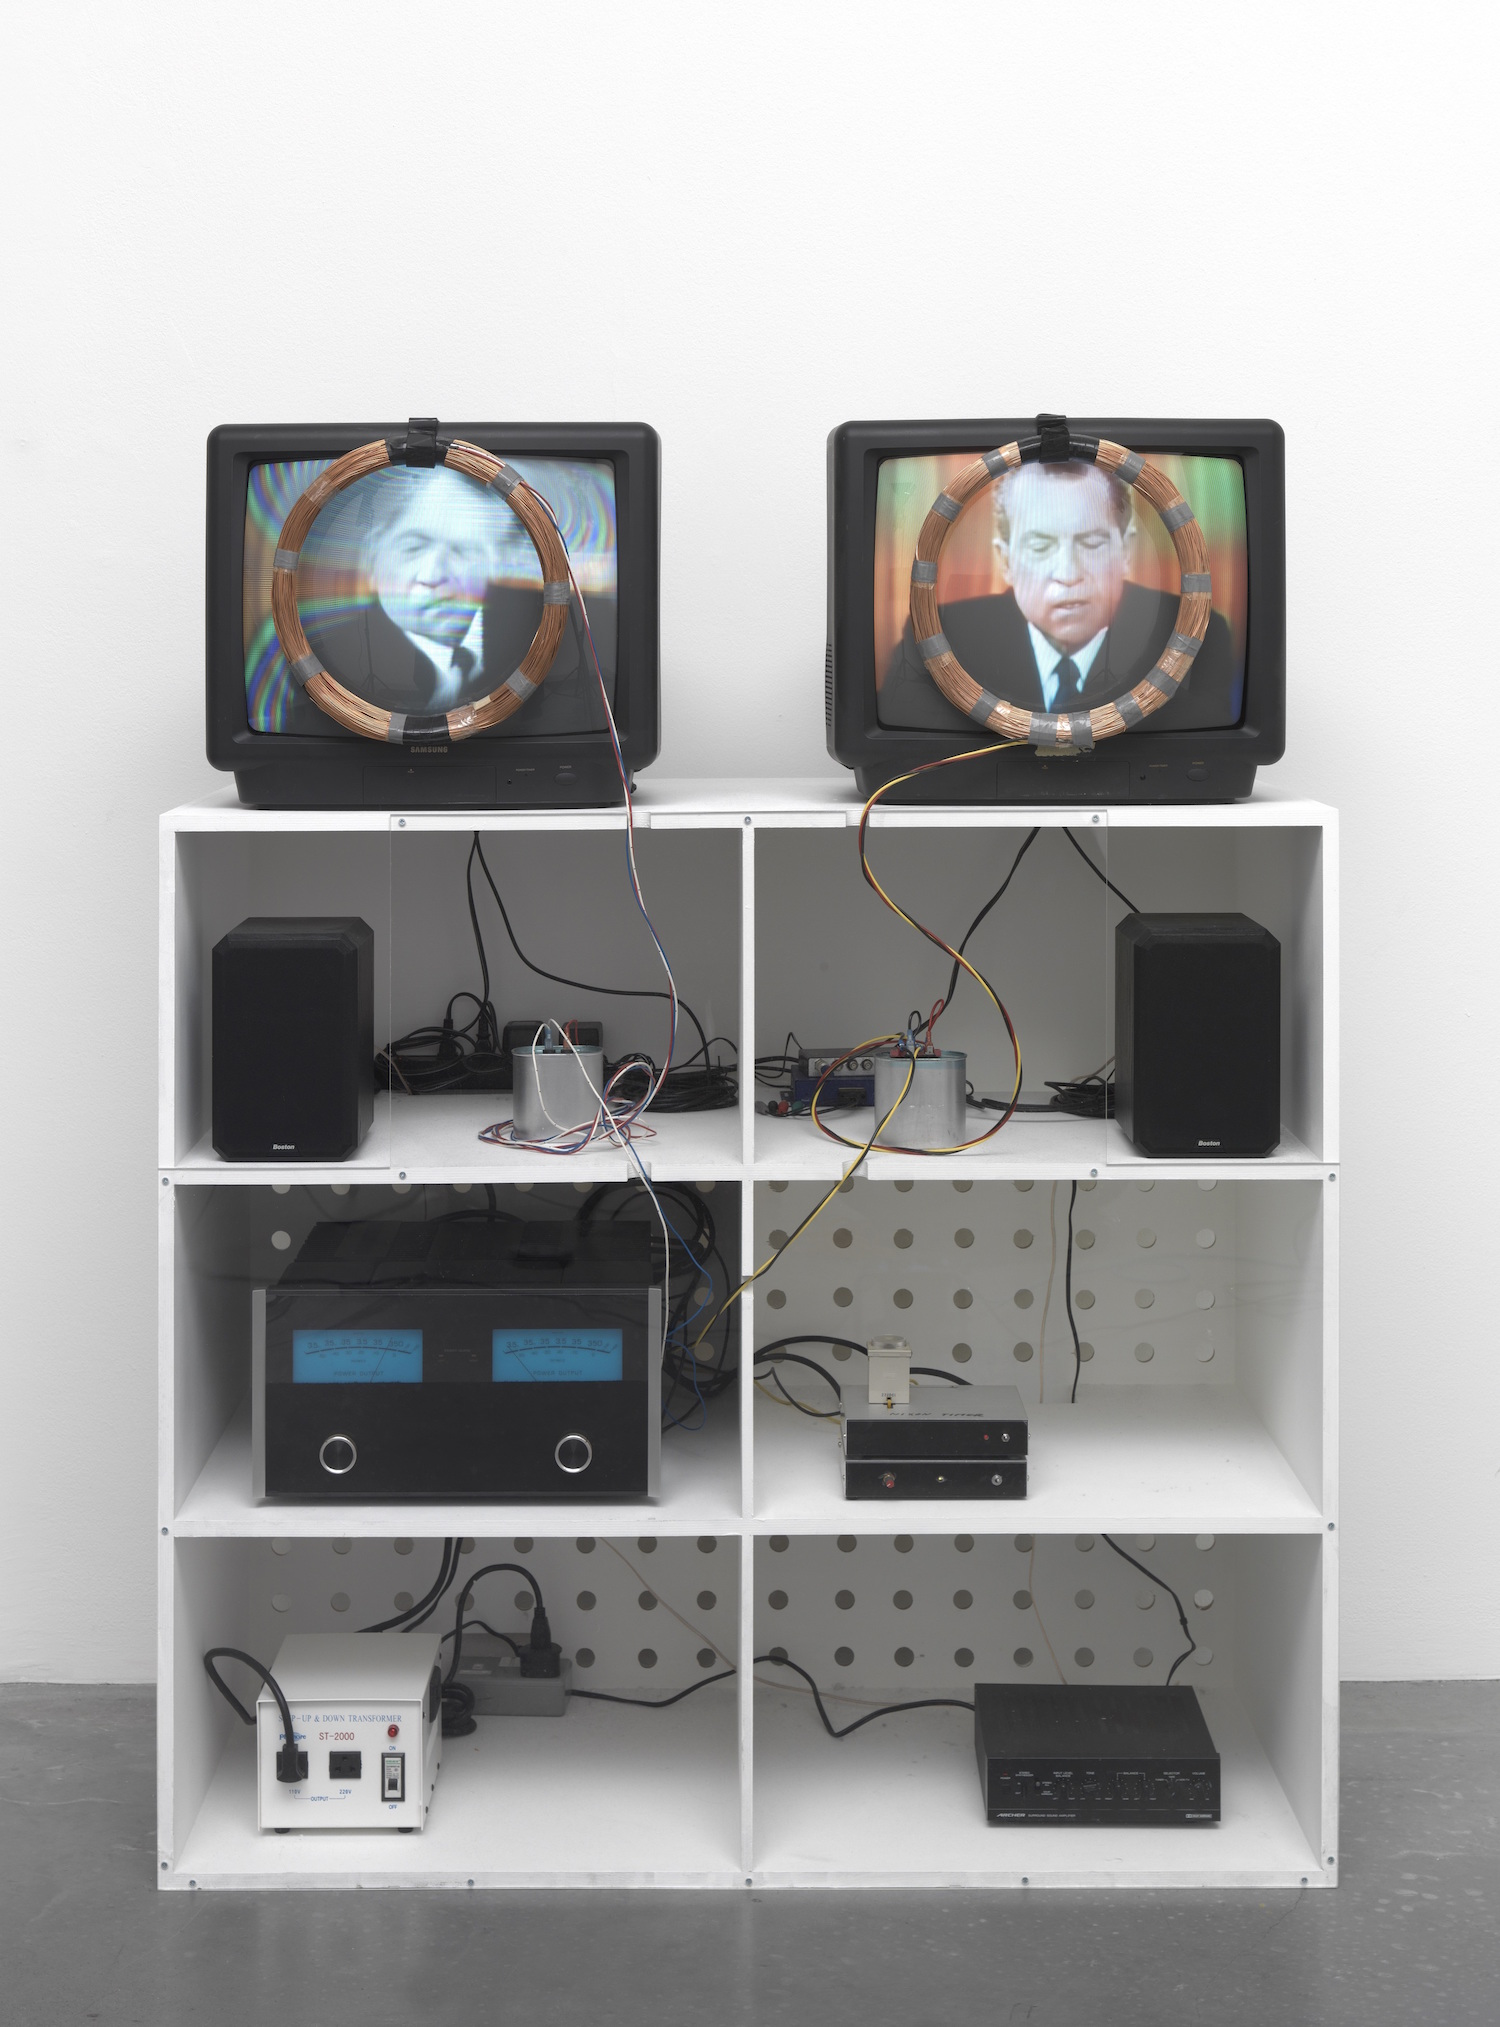 Nam June Paik, Nixon 1965-2002. Tate, Purchased with funds provided by Hyundai Motor Company